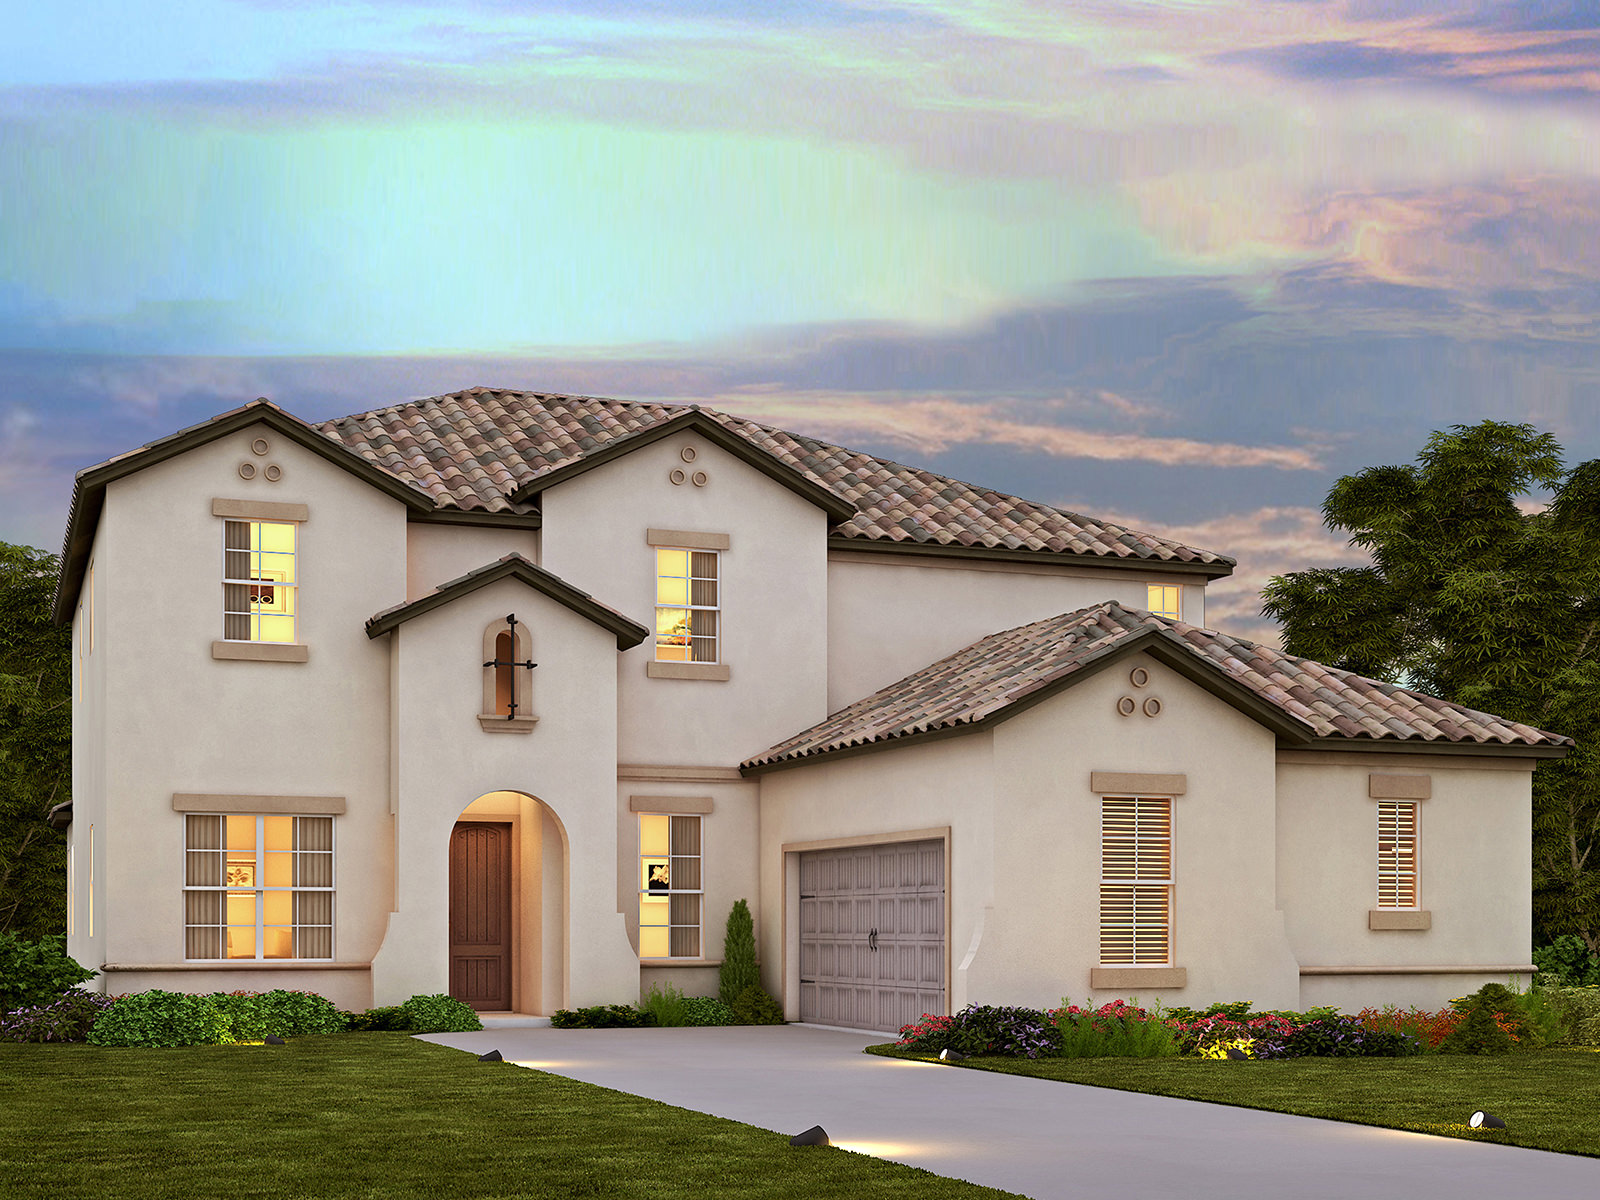 Watermark Kitchen Faucets Camellia Model 5br 4ba Homes For Sale In Winter Garden